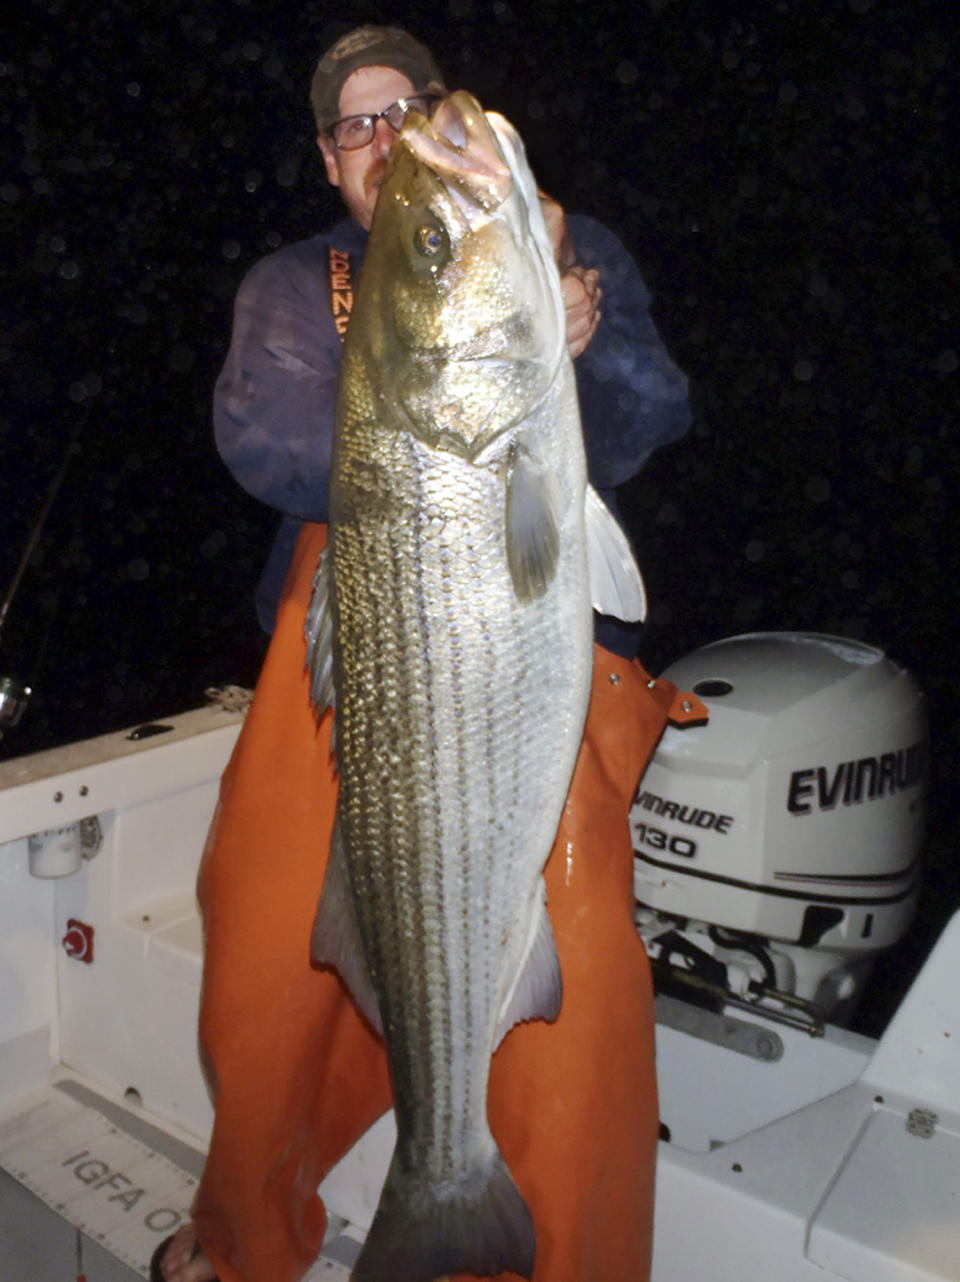 <p> In this 2012 photo provided by Greg Myerson shows Myerson, of North Branford, Conn., with one of the record striped bass he caught off the Connecticut coast. Myerson consistently catches striped bass 50 pounds and much larger by methodically studying his prey and developing devices to lure the fish to him. (AP Photo/Greg Myerson)</p>